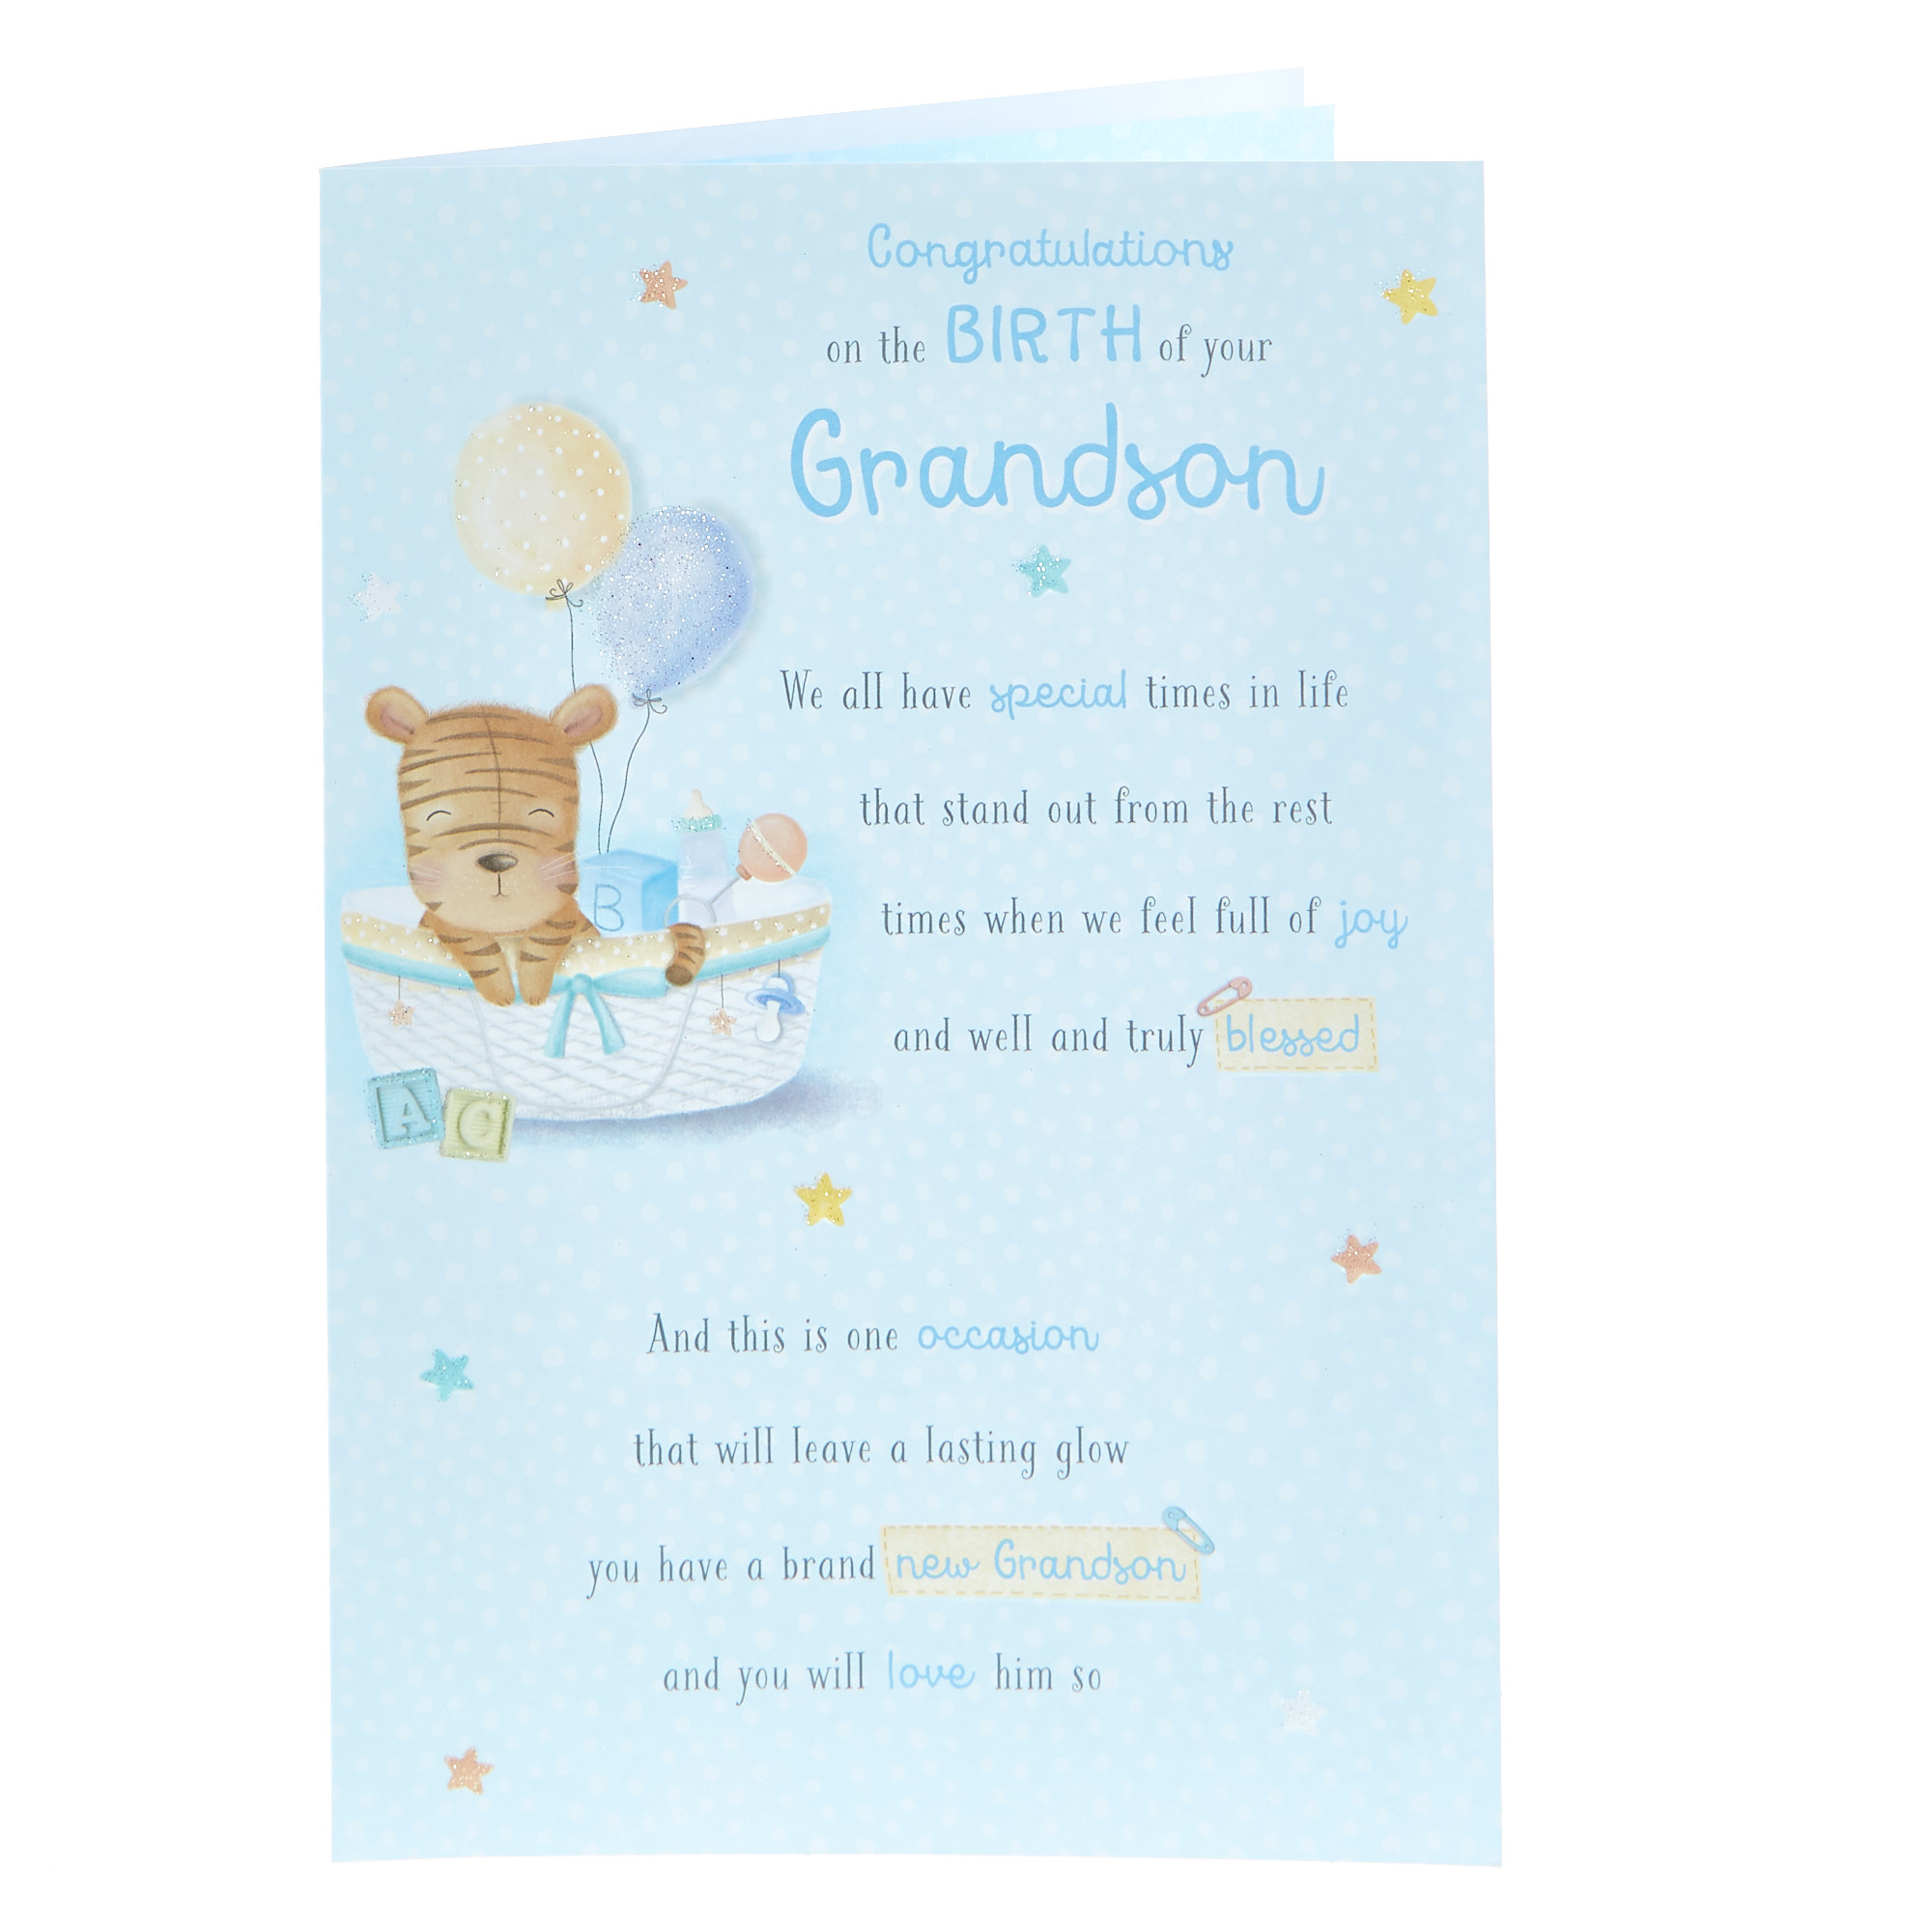 NEW BABY GRANDSON CARD GRANDPARENT CONGRATULATIONS BOY BIRTH FLITTER FINISH